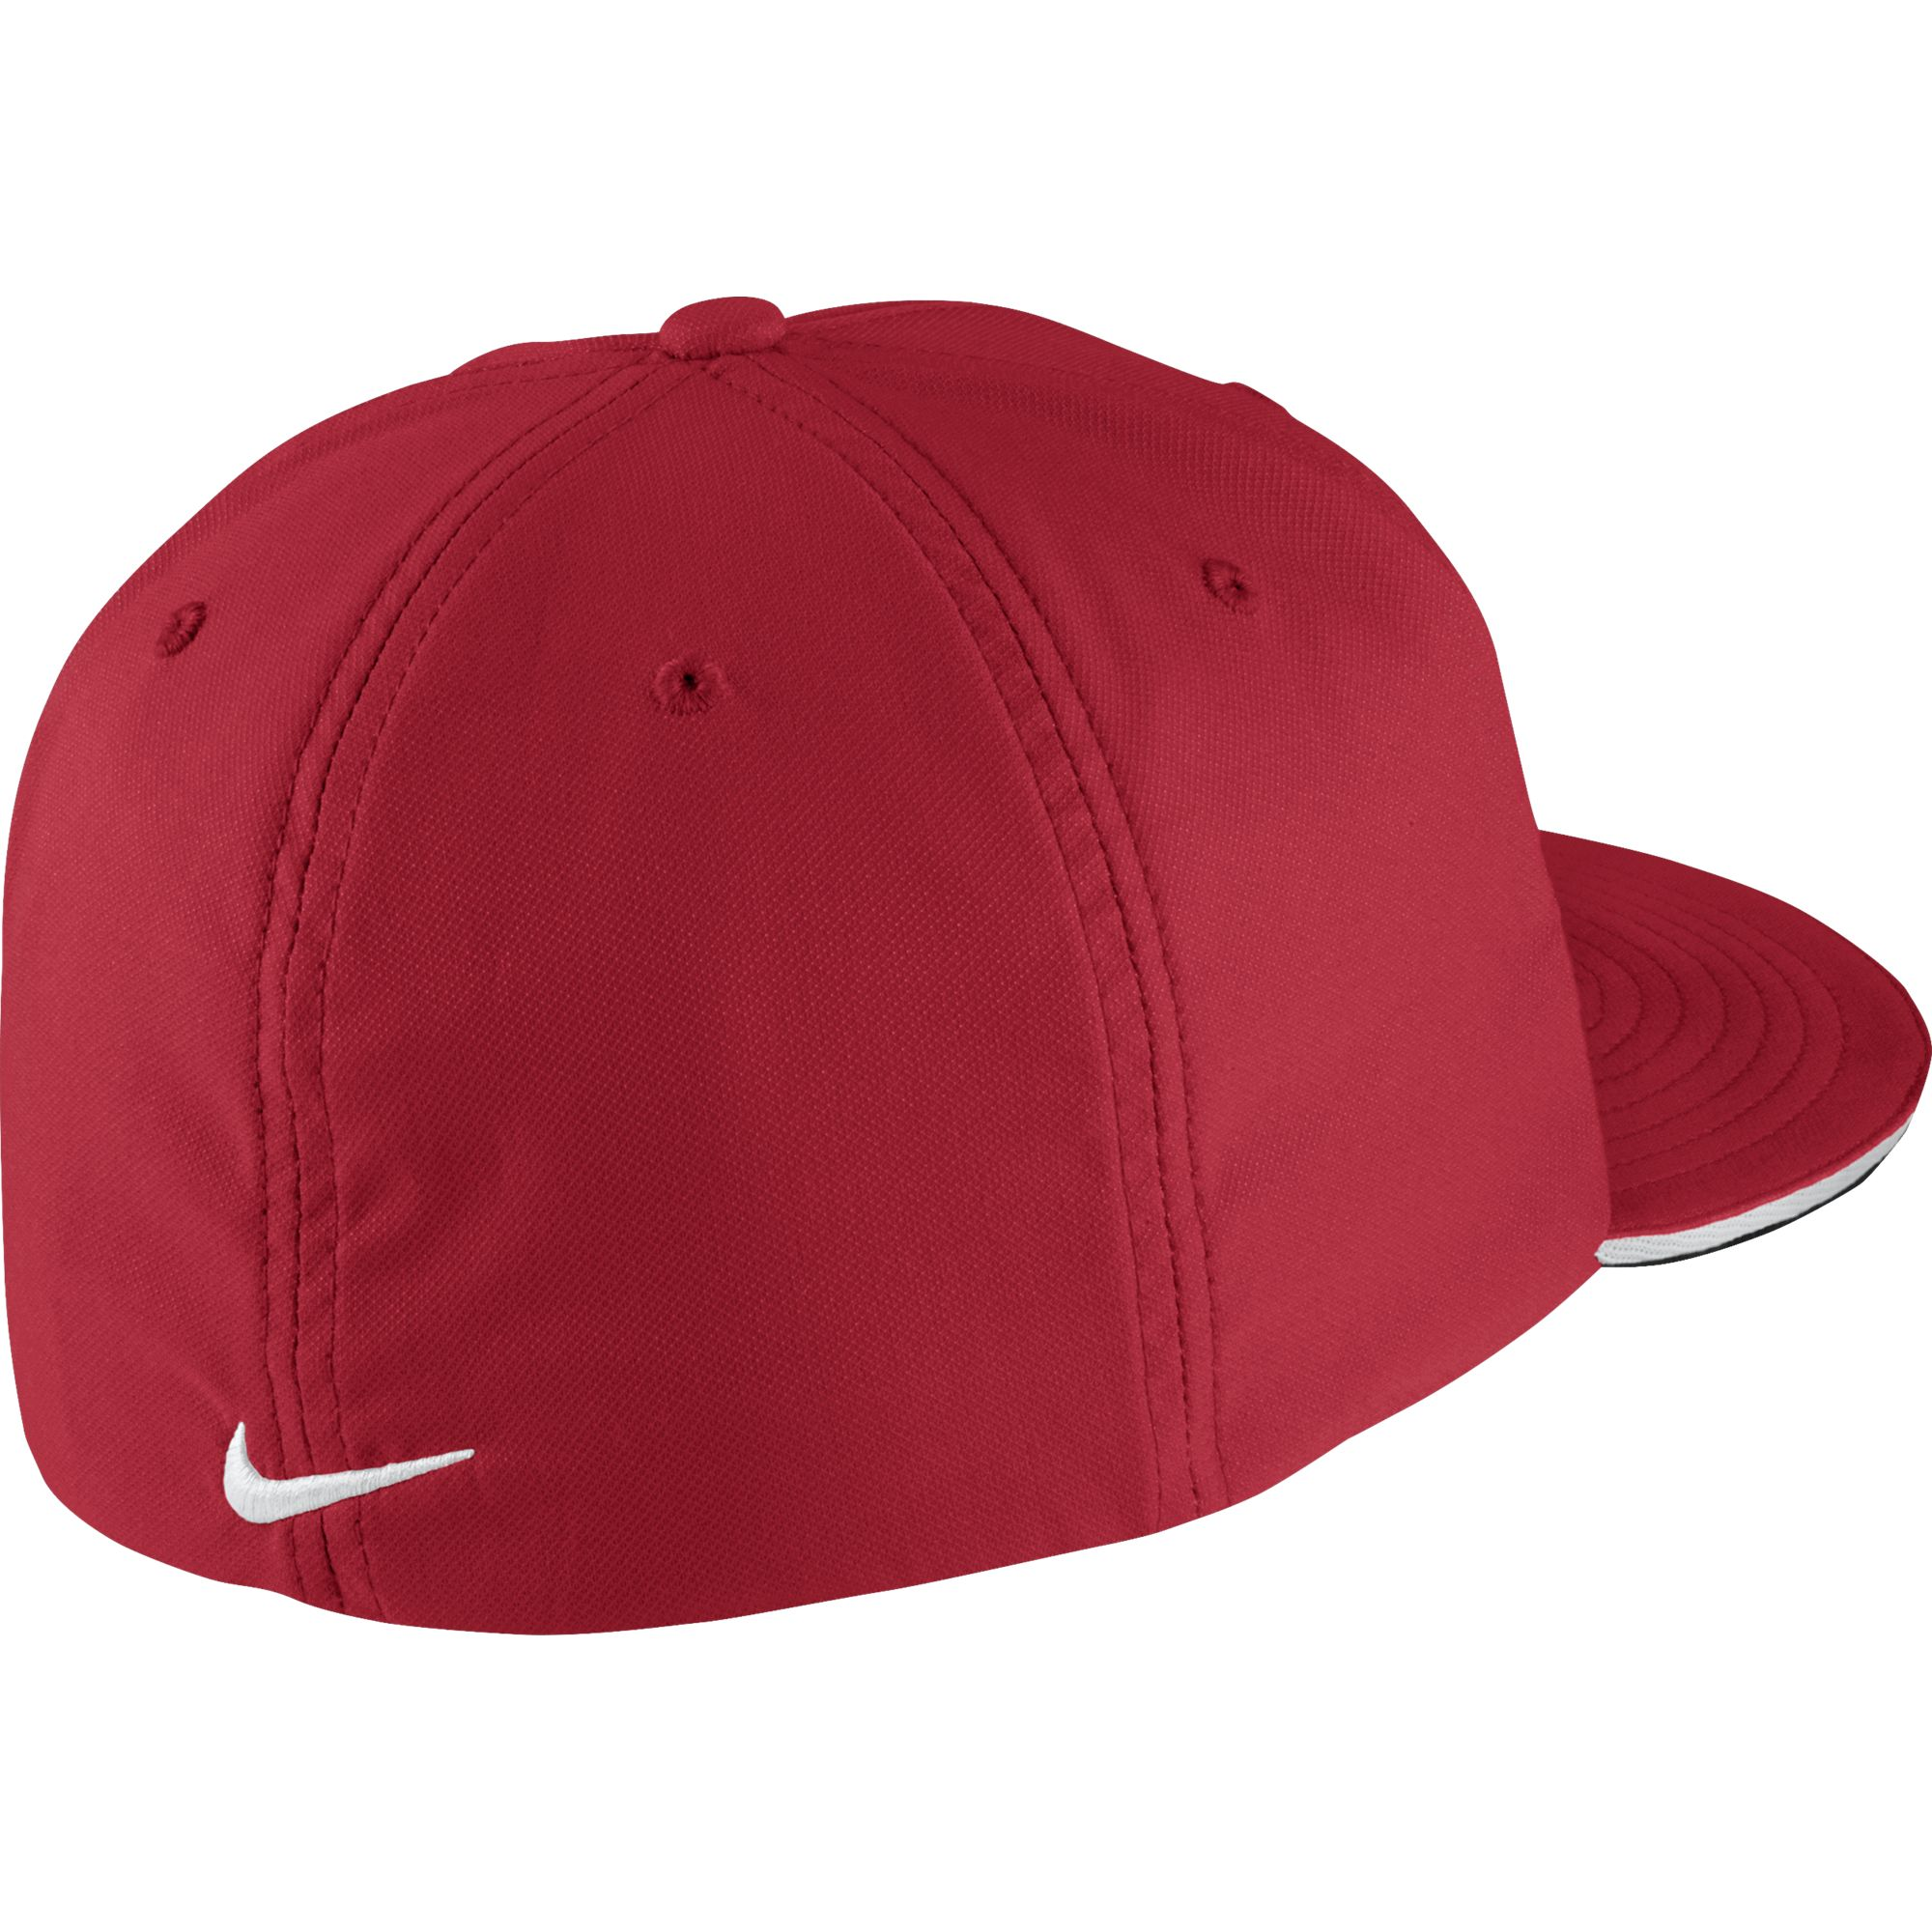 7799566666fc2 New Nike Golf True Tour Flat Bill Fitted Cap Hat - Pick Color